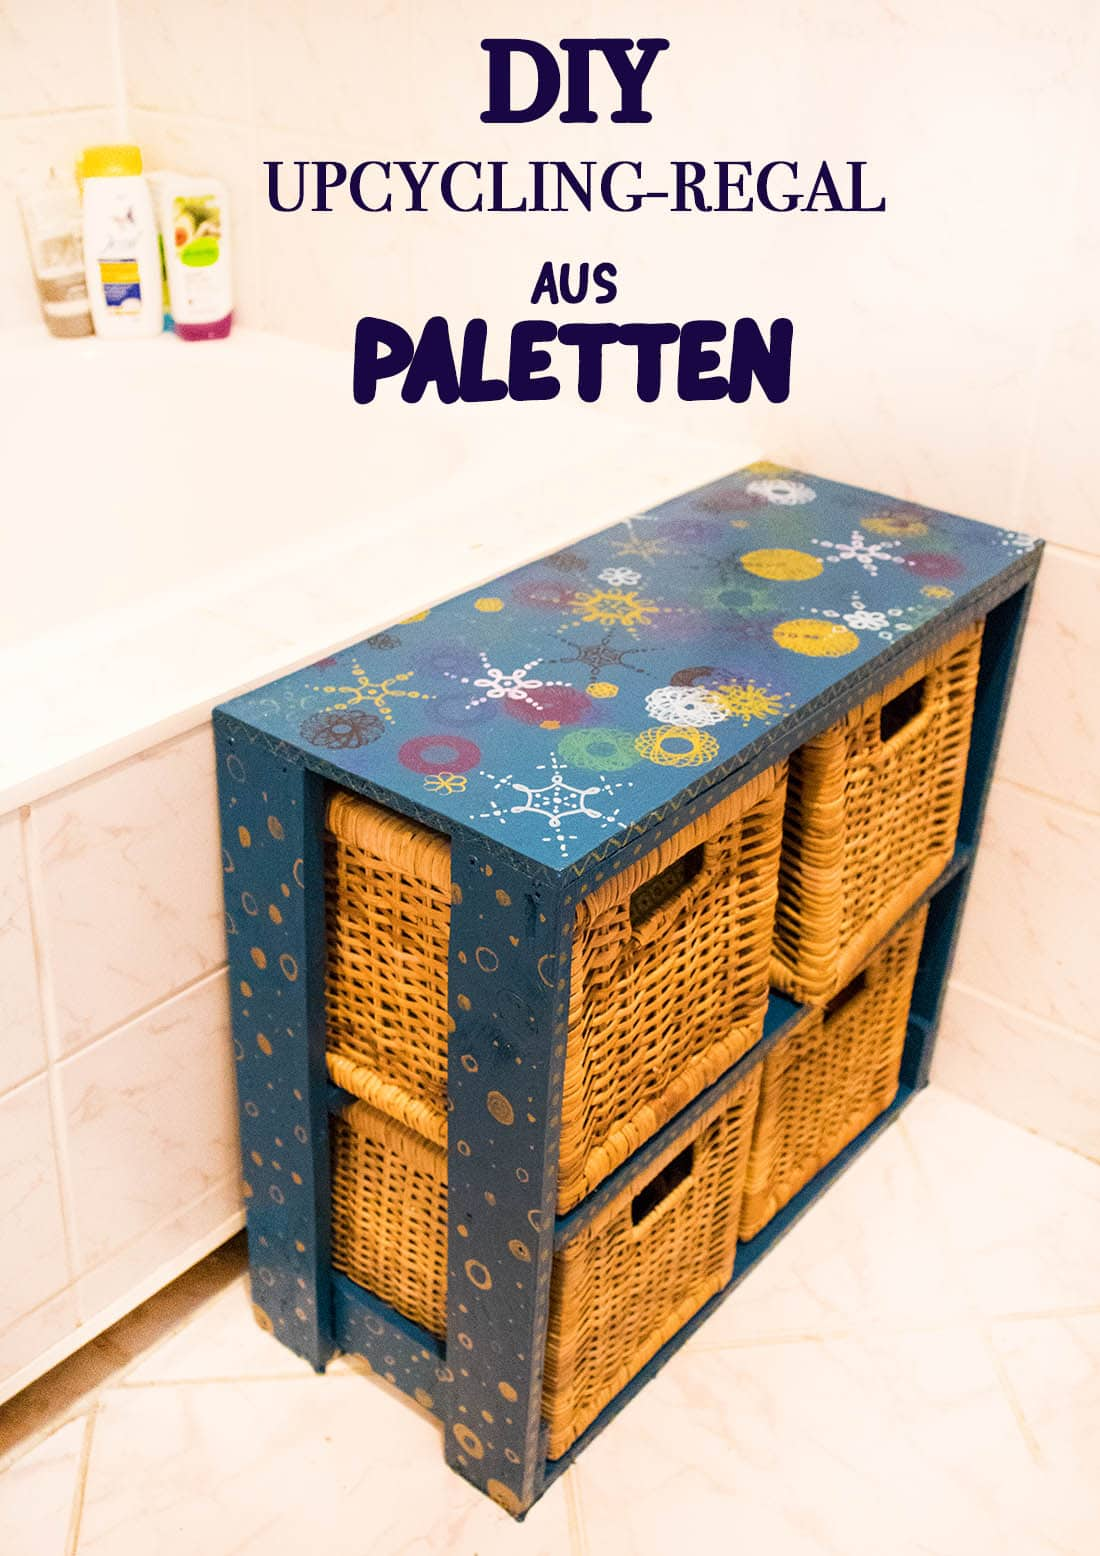 DIY - Upcycling Regal aus Palletten